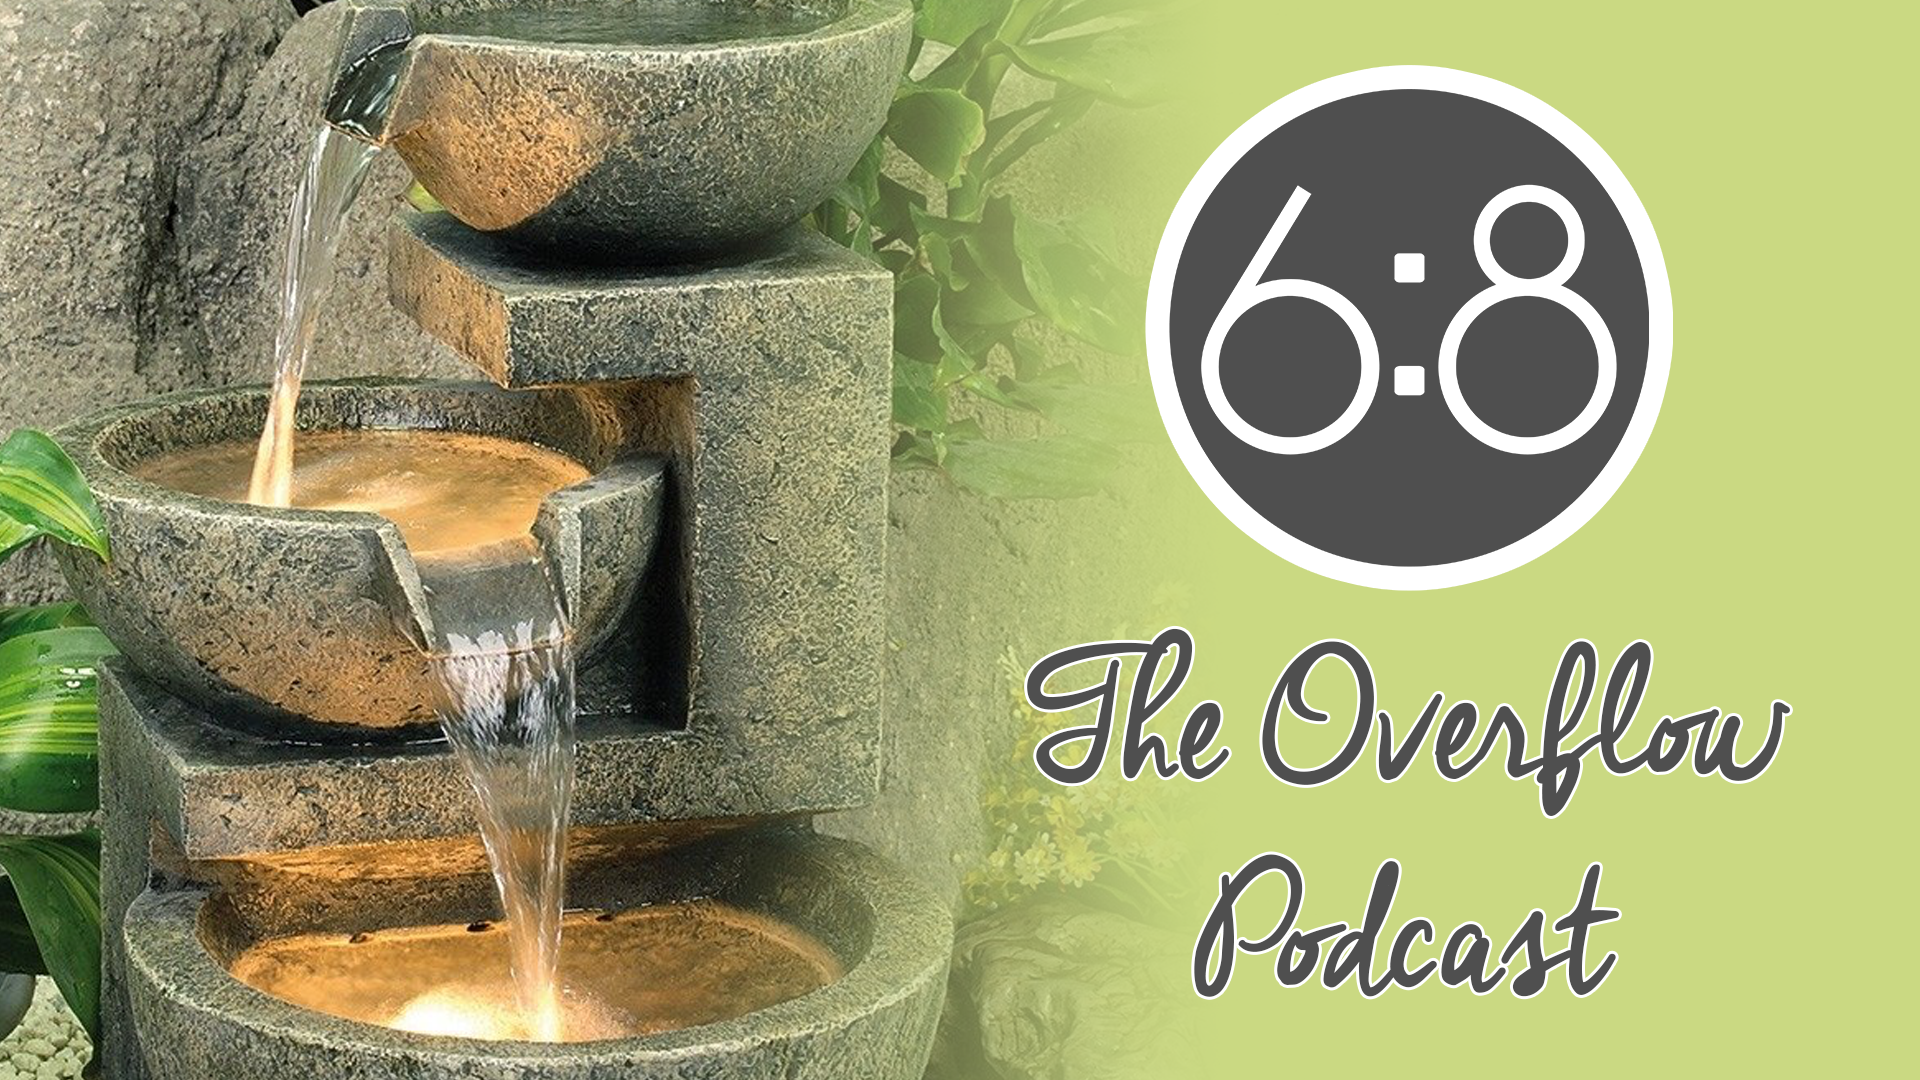 The Overflow Podcast, Episode 0057: Like Christ, Week 10, Day 5